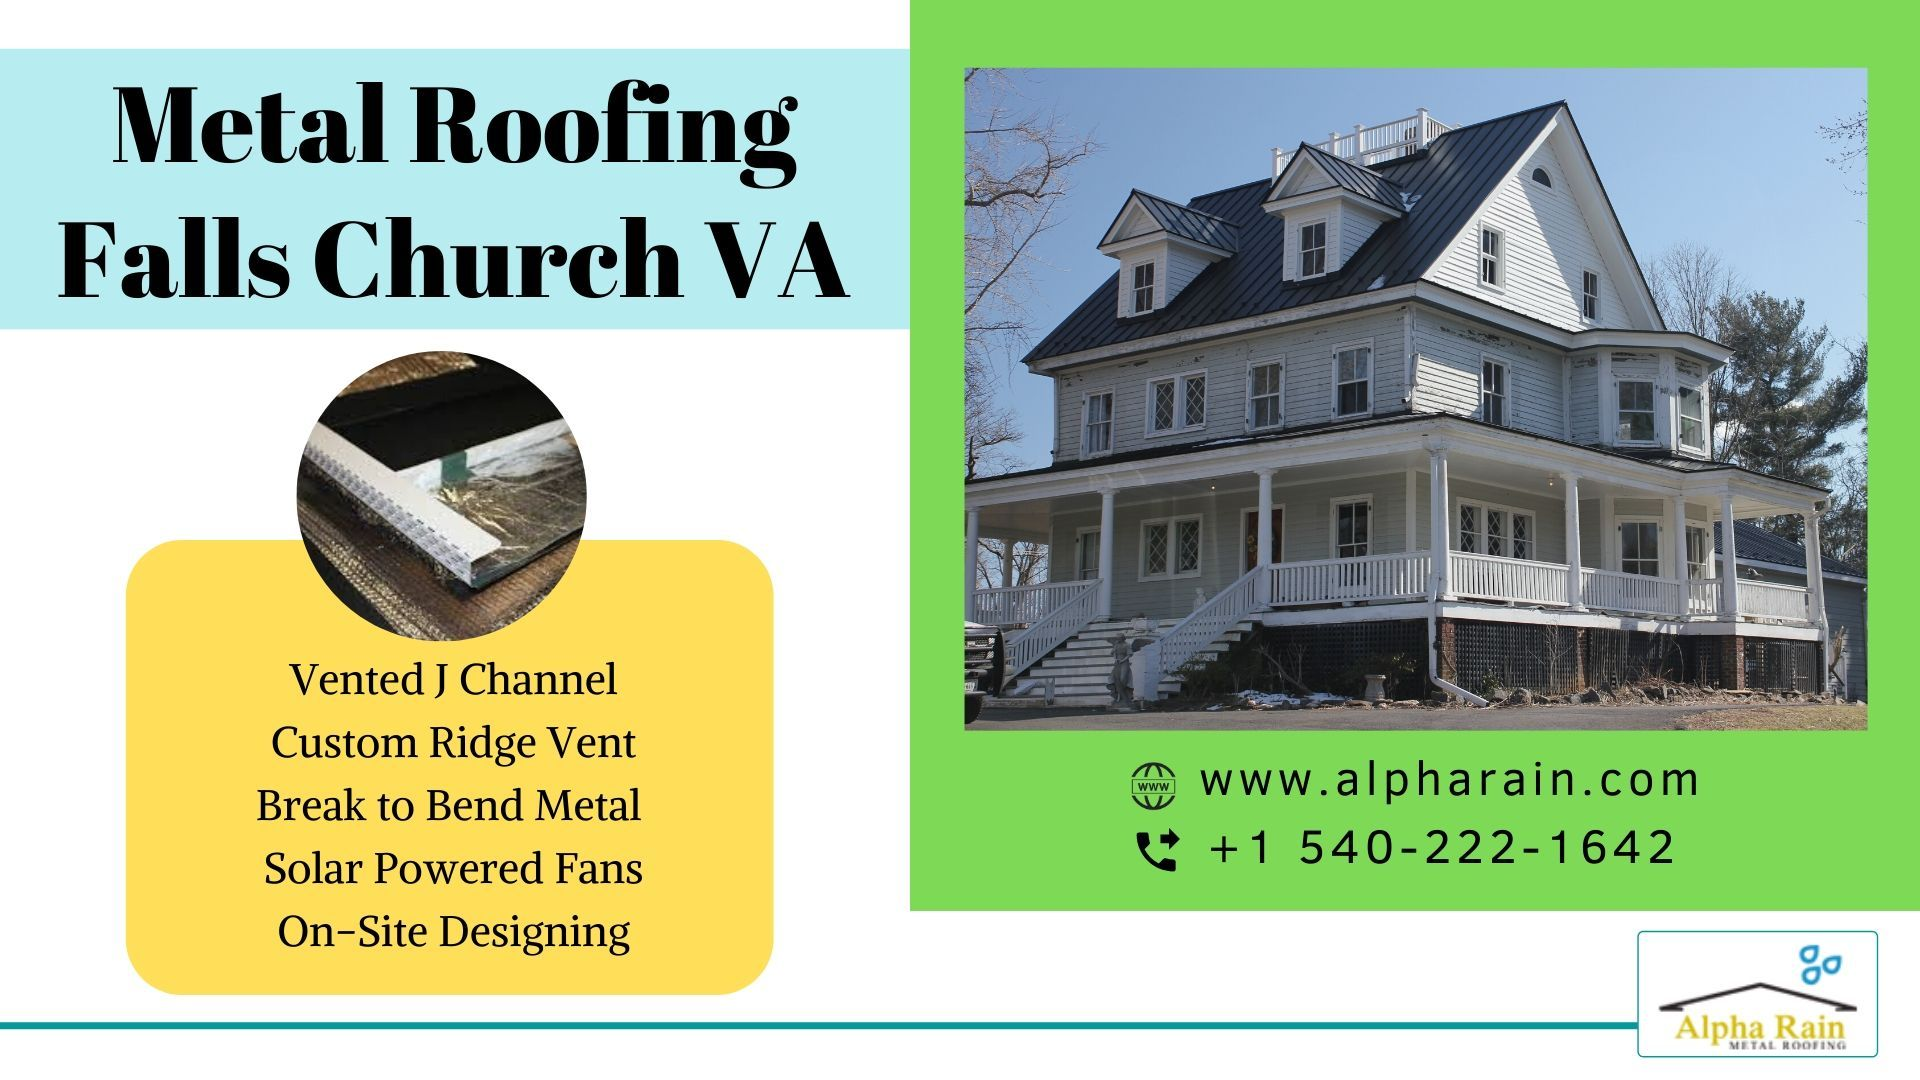 Install Ridge Vents On Metal Roofing Falls Church Va In 2020 Metal Roof Falls Church Ridge Vent